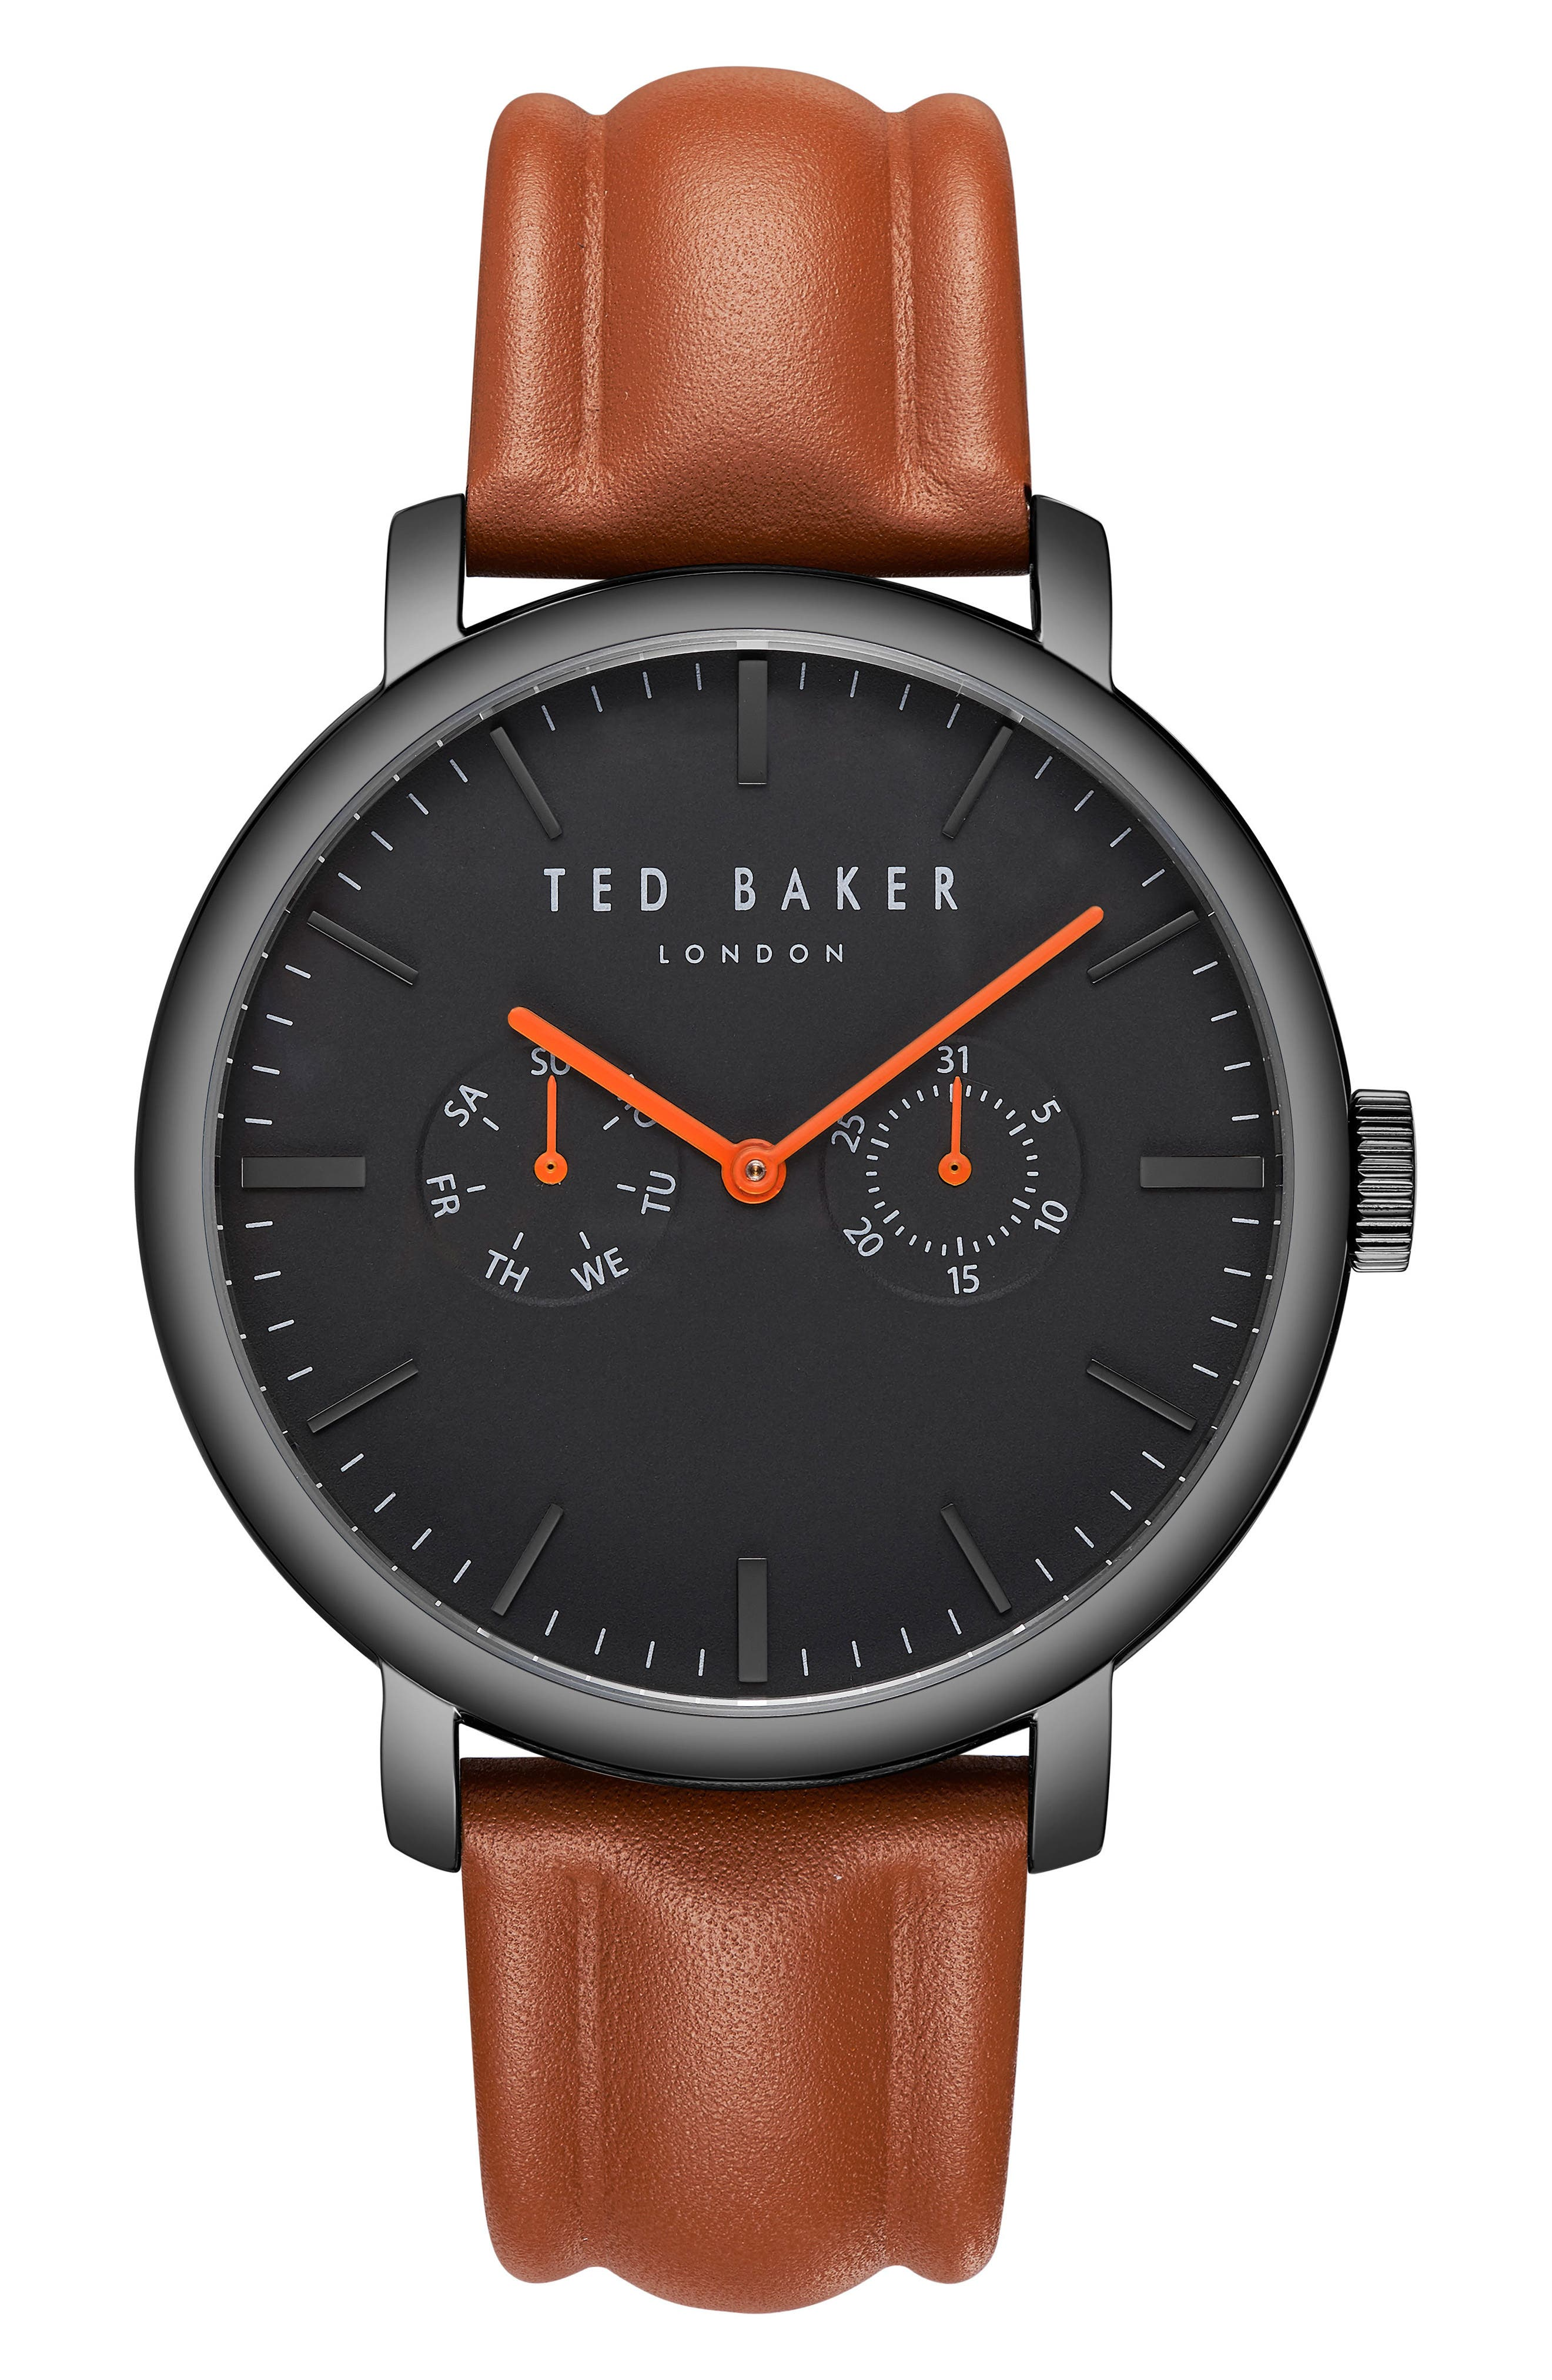 7b597a0ad8203 Women s Ted Baker London Watches